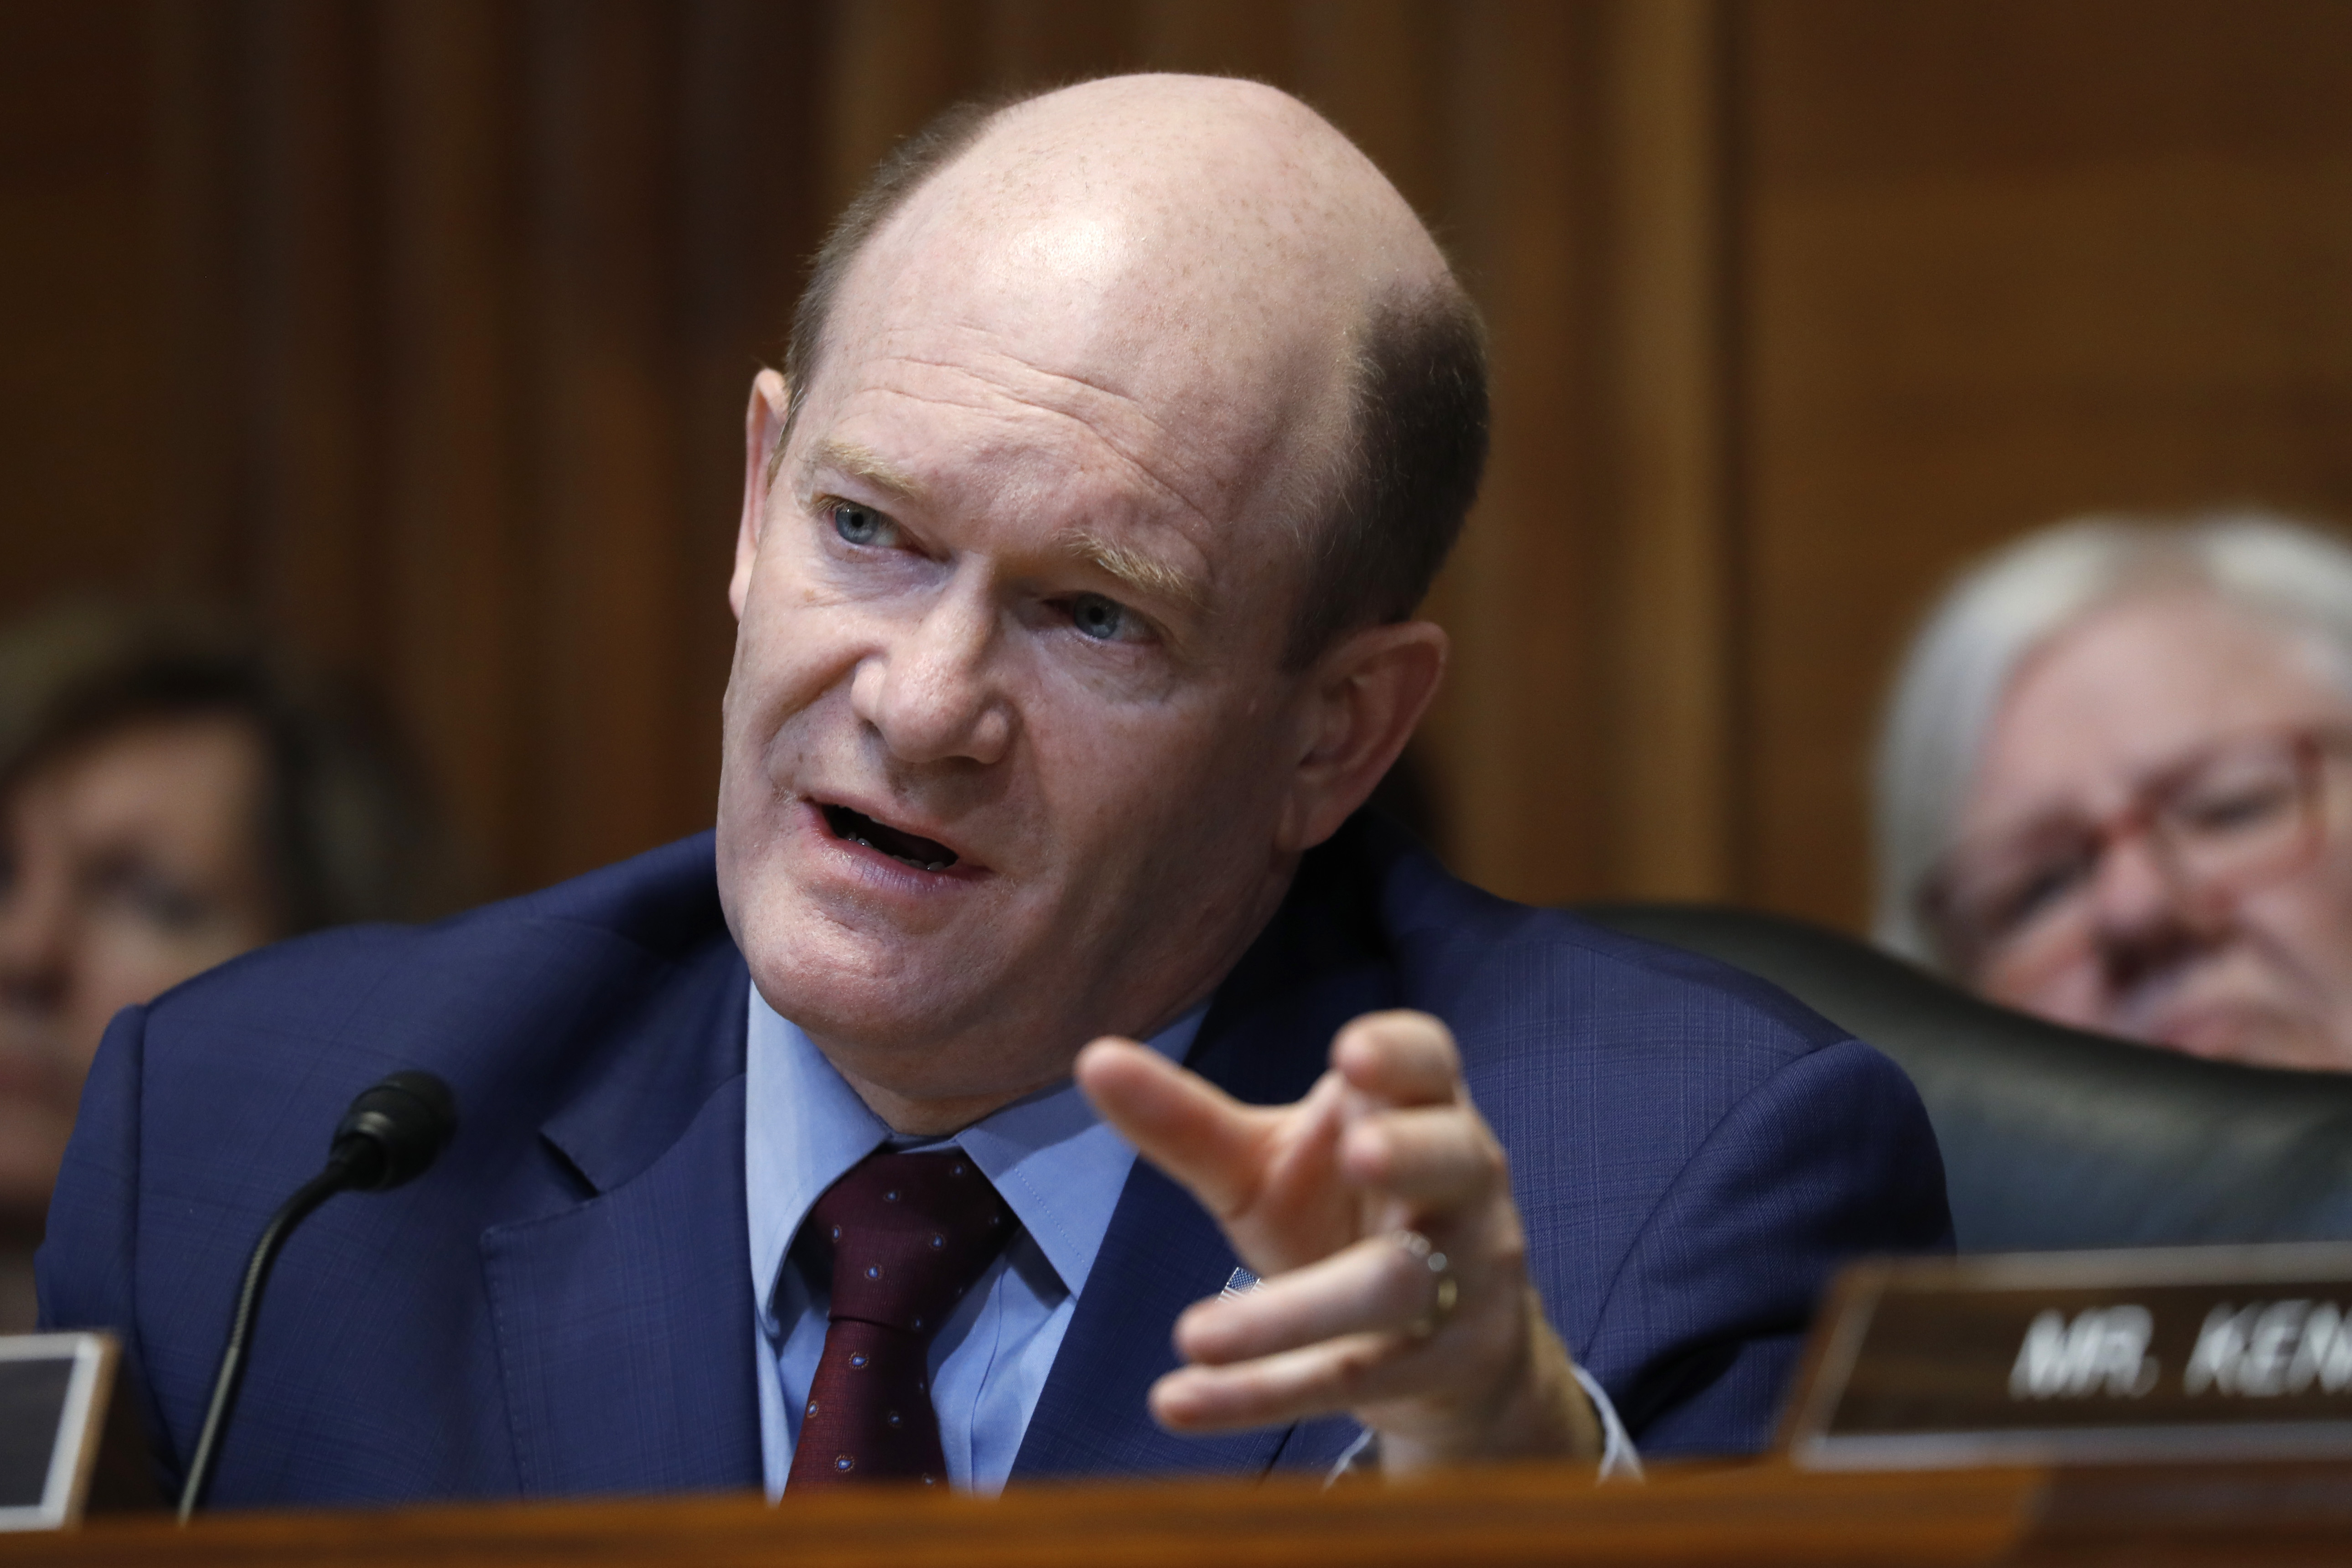 Chris Coons: Republicans say privately Mueller report shows Donald Trump obstructed justice